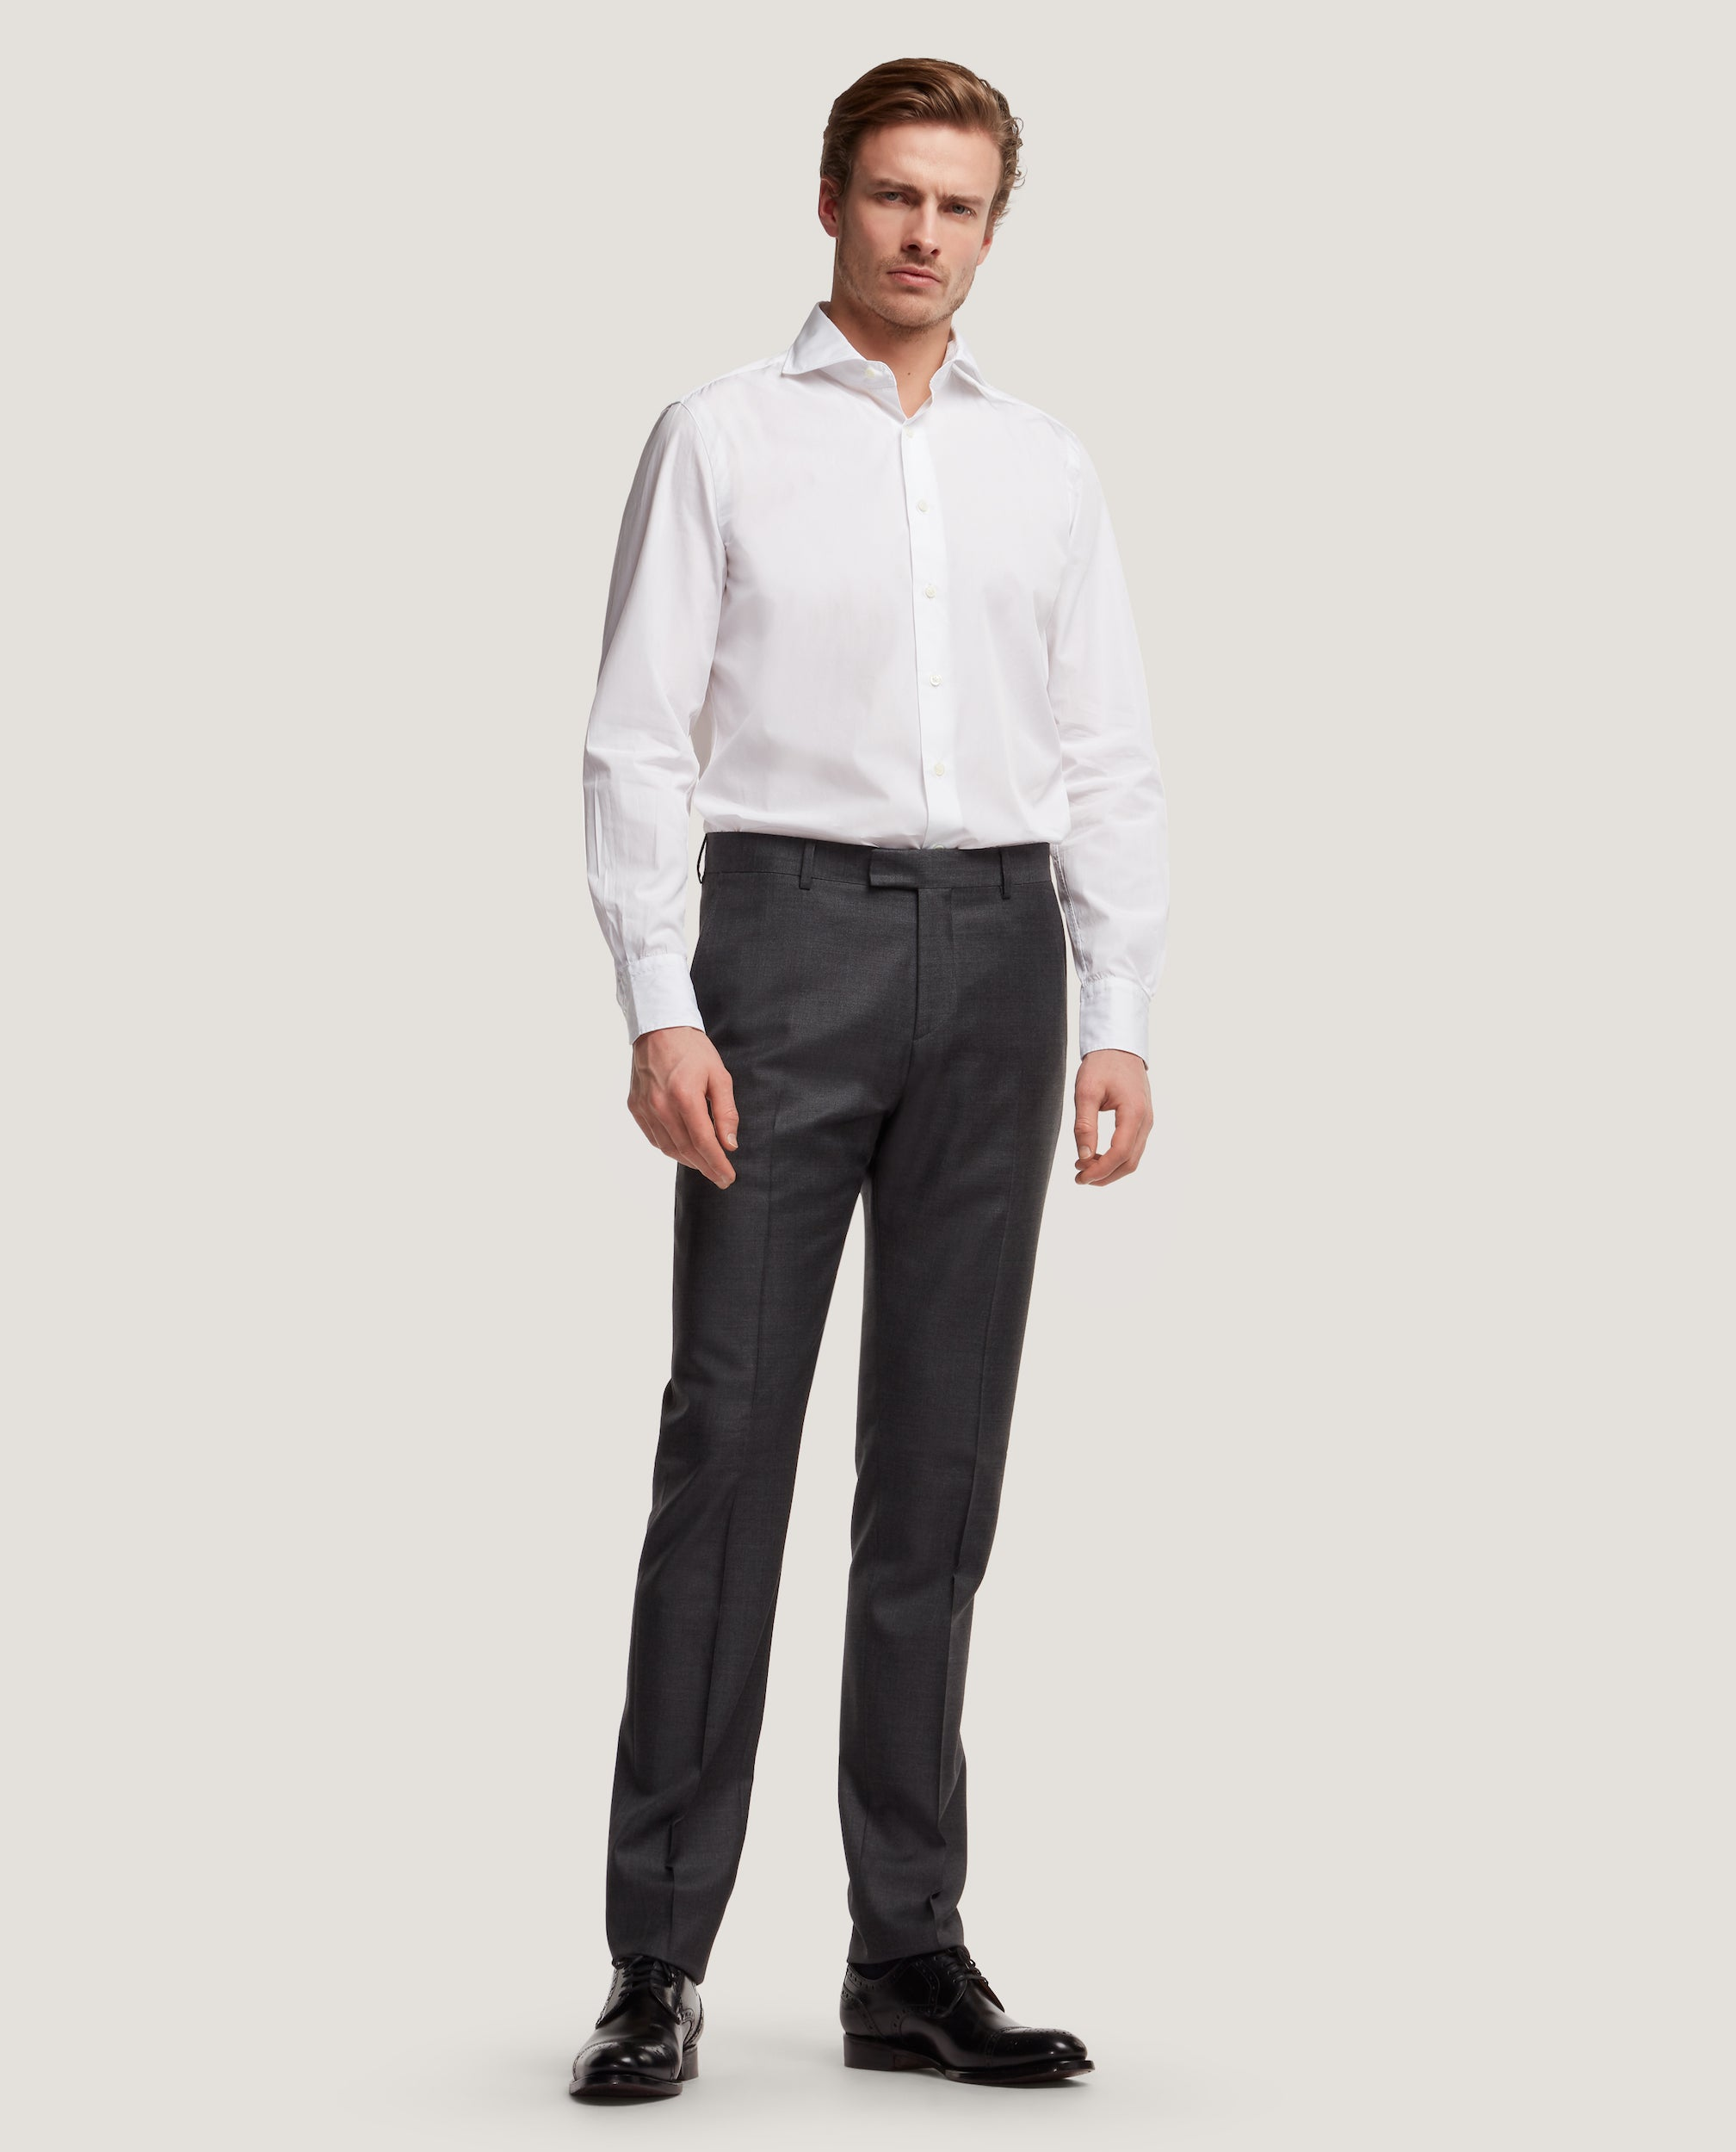 ROCCO SUIT TROUSERS | WOOL-MOHAIR BLEND by Salle Privée